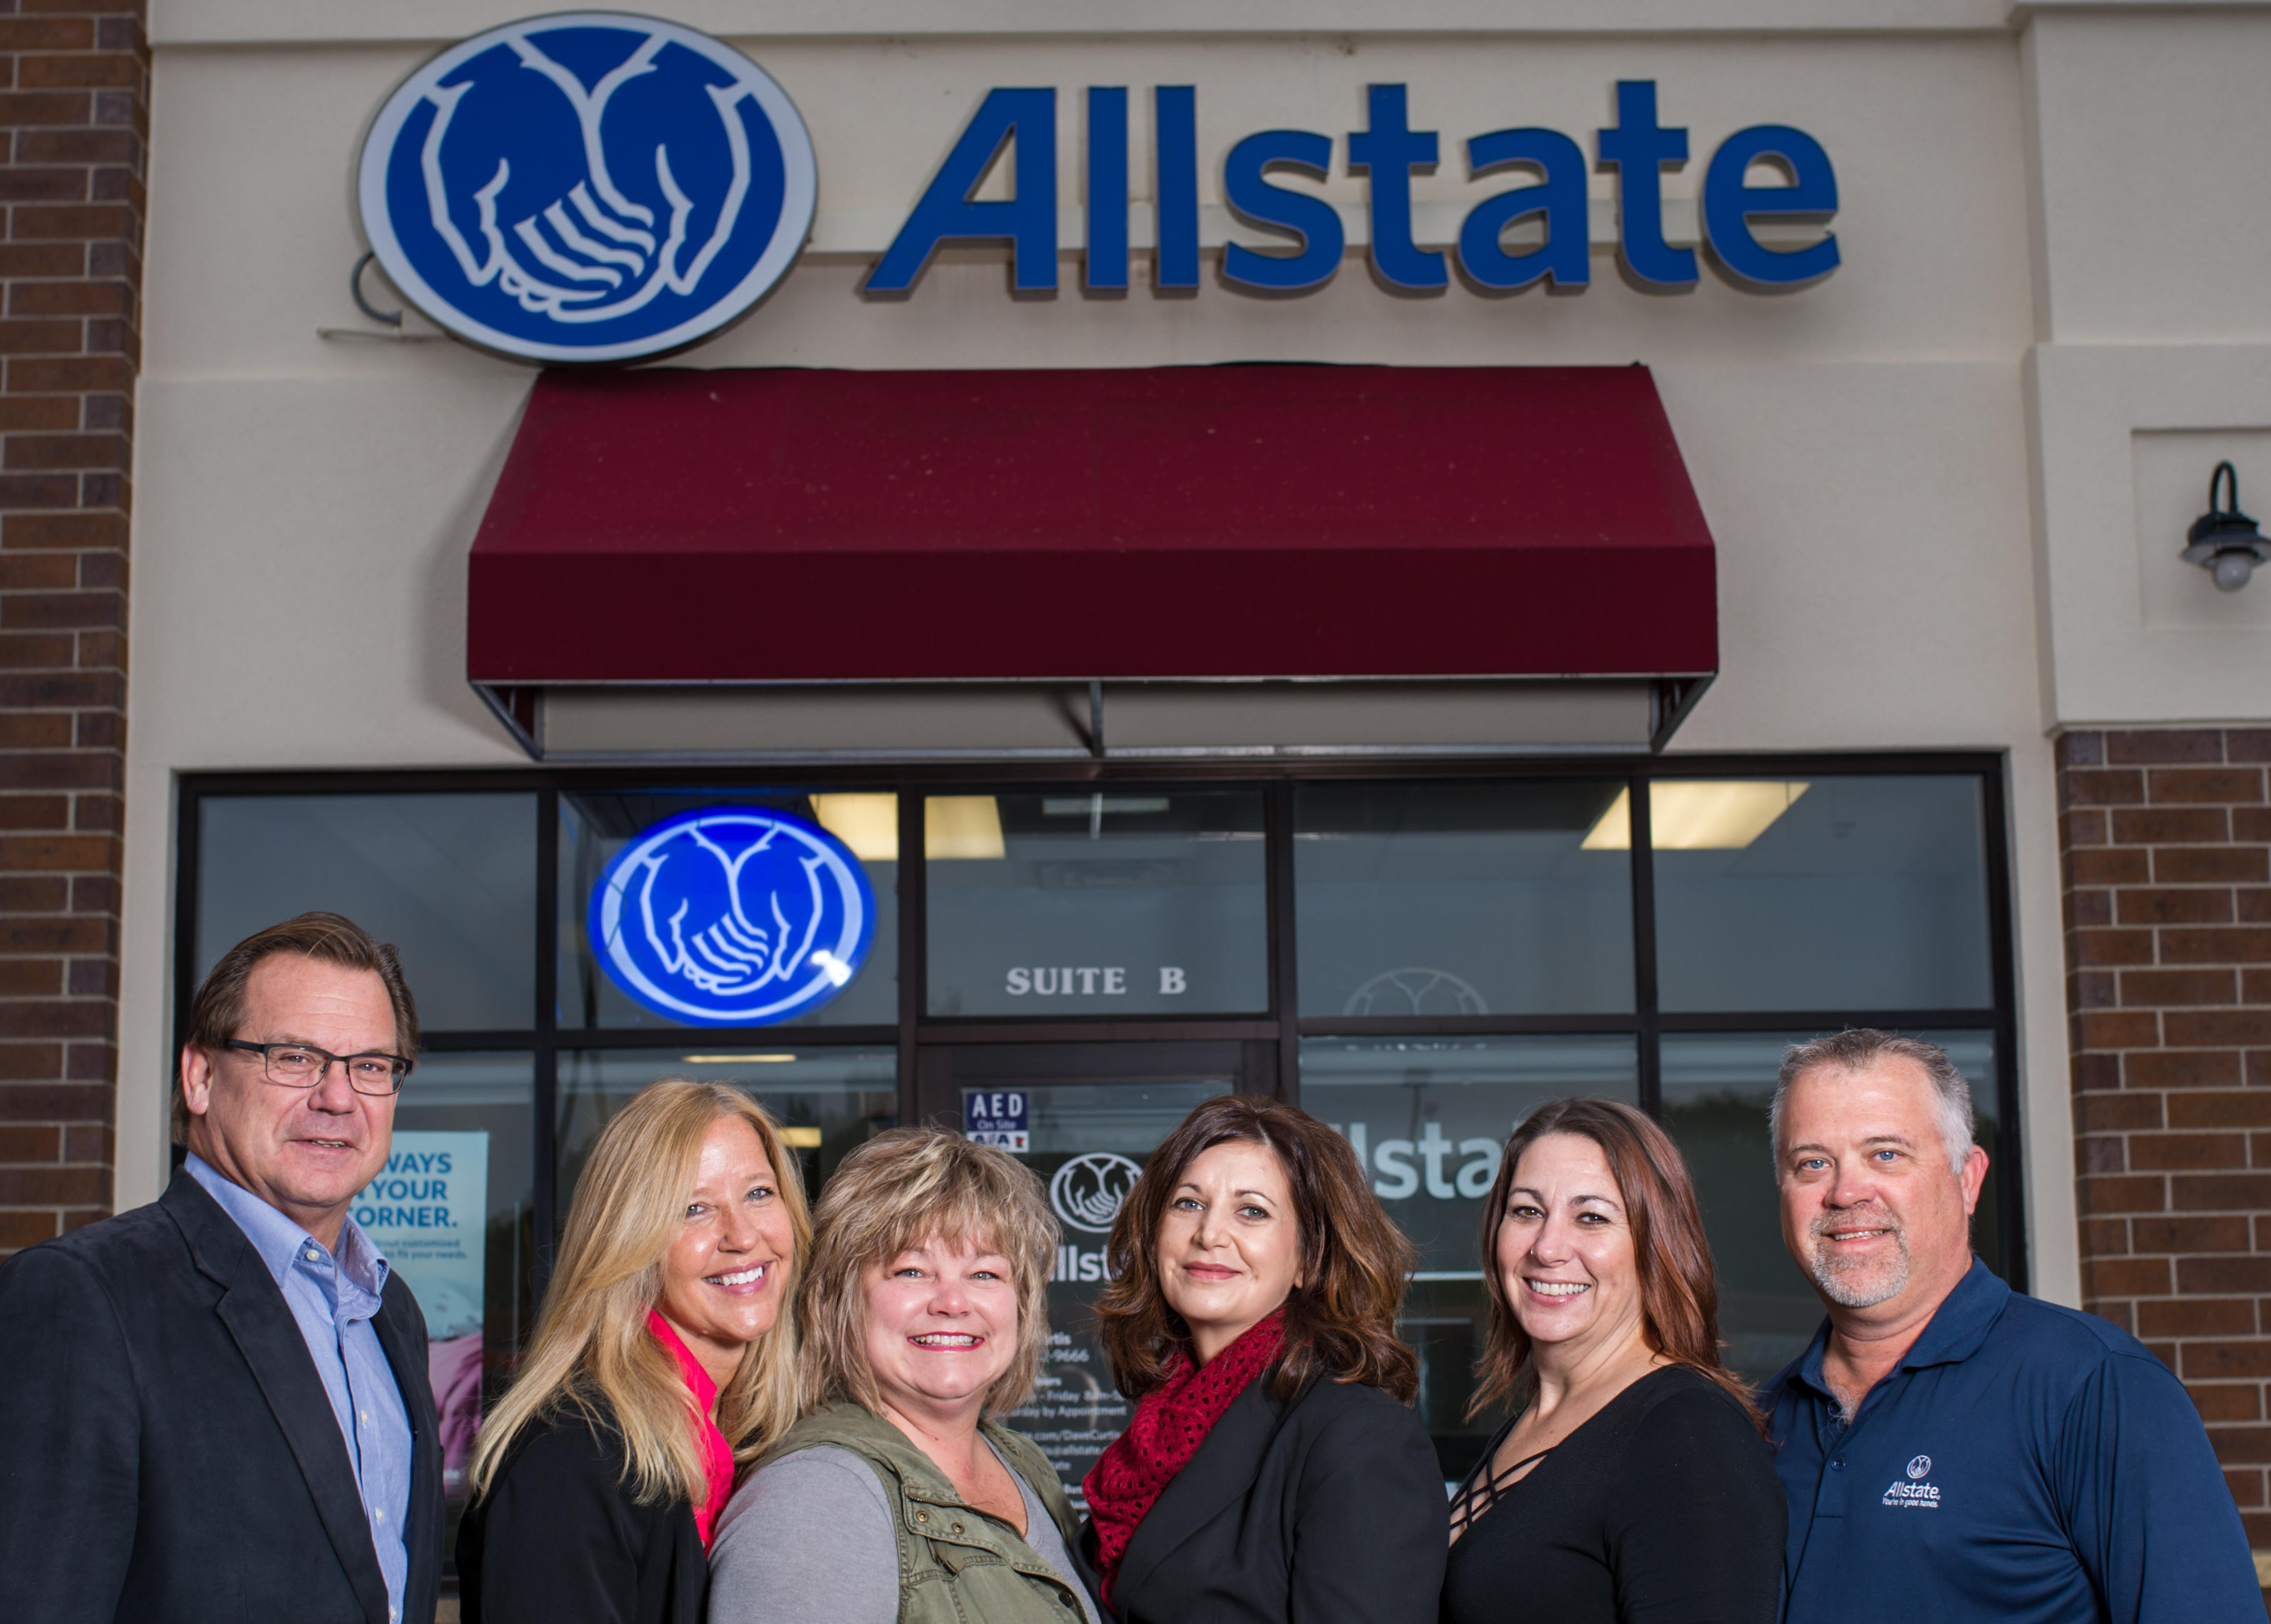 Dave Curtis: Allstate Insurance image 1